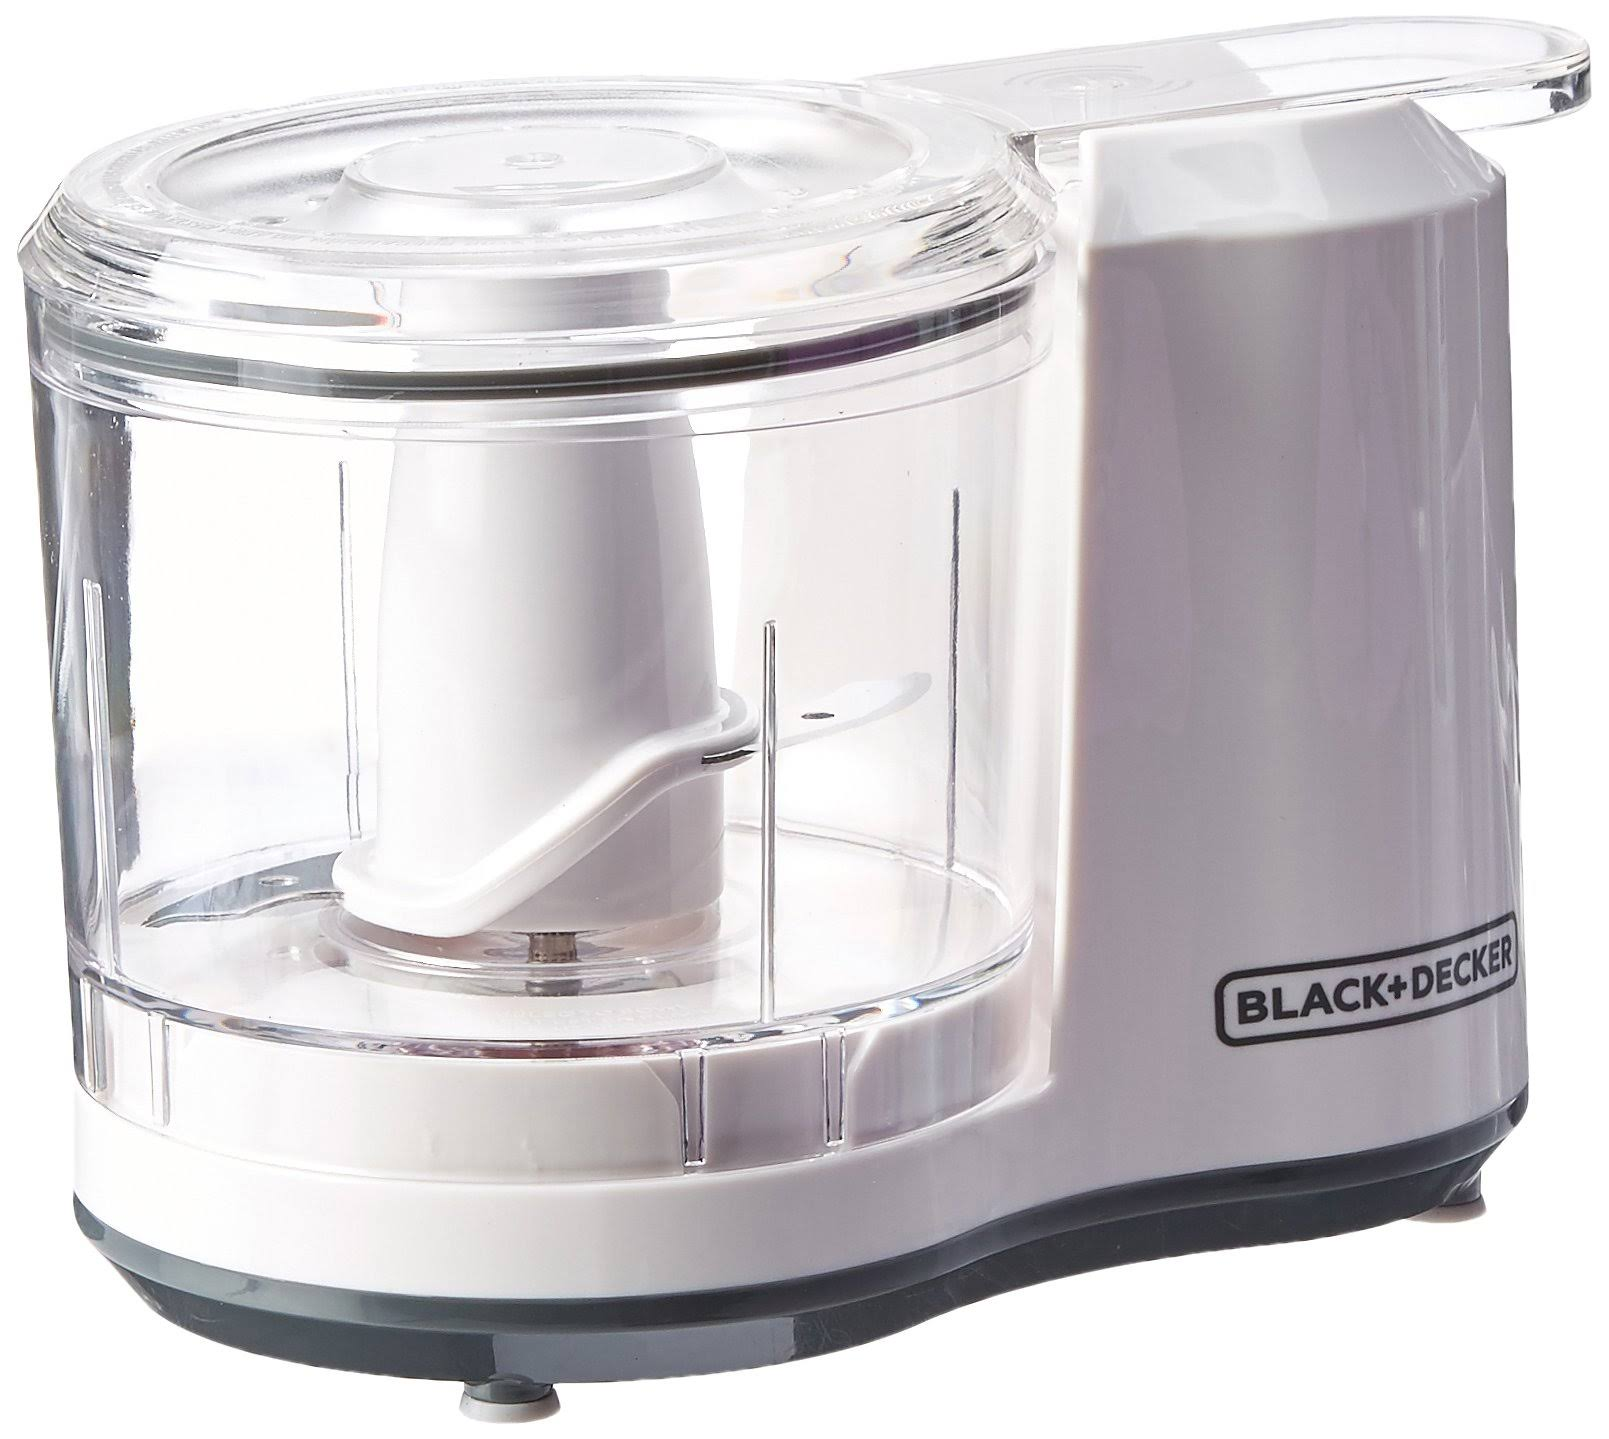 Black & Decker 1.5 Cup Mini Chopper